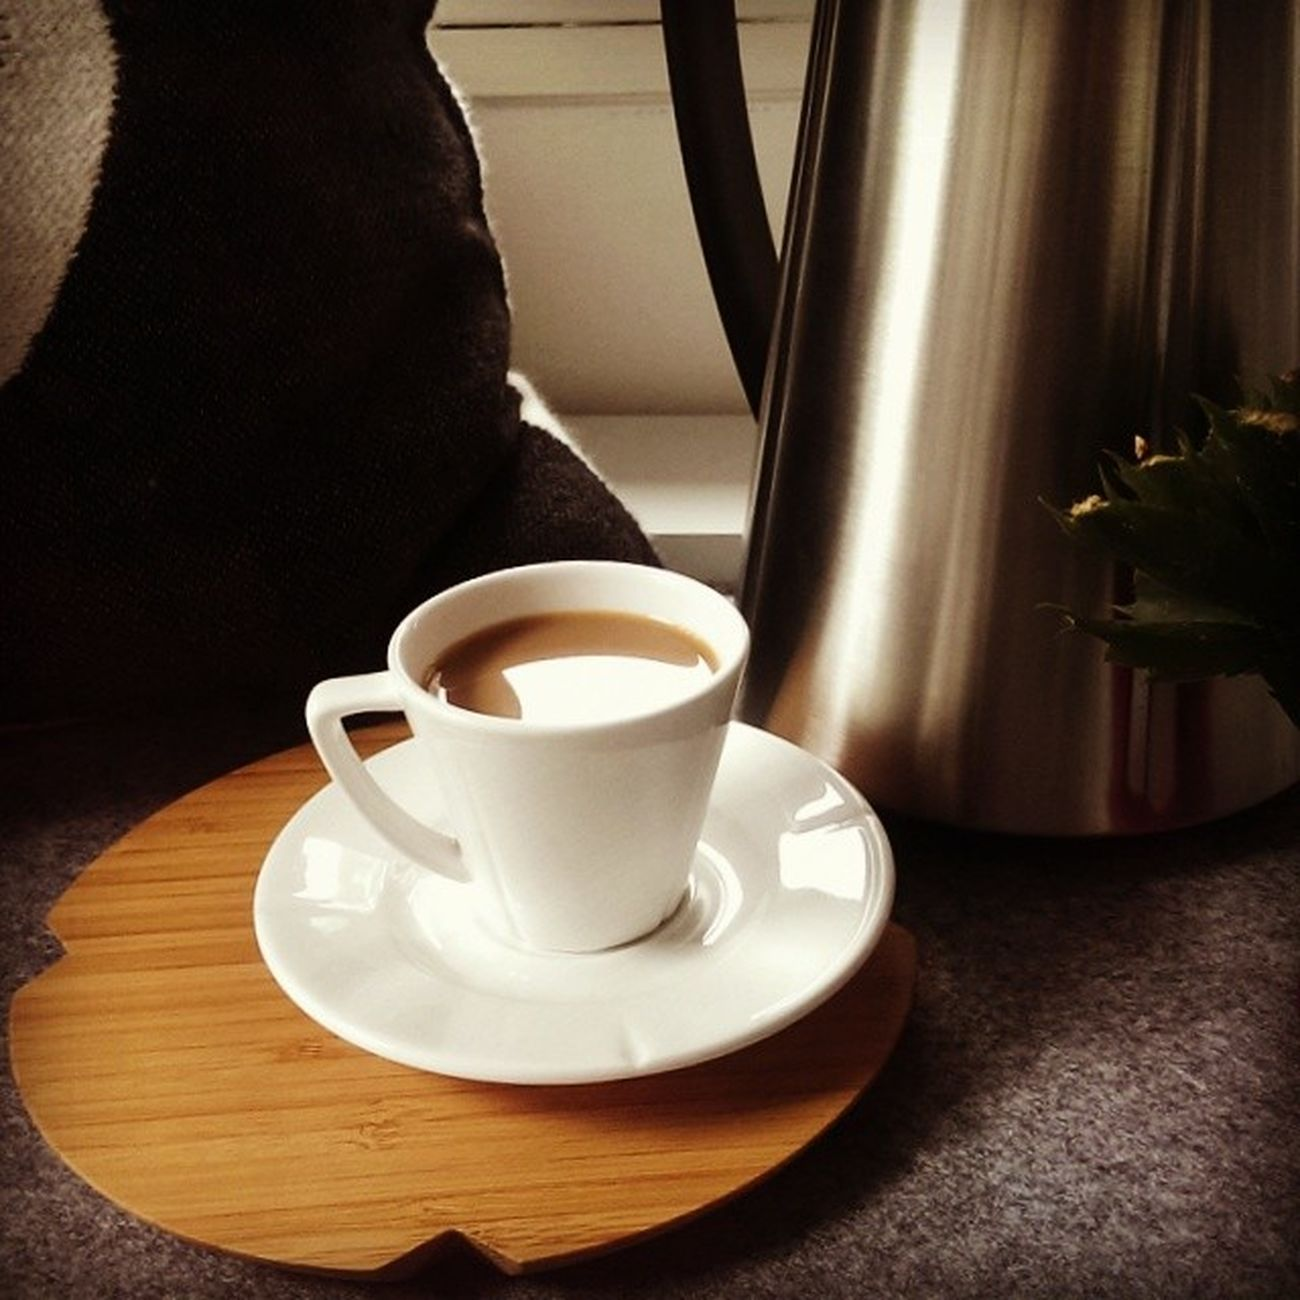 Bad weather? Good morning. Kaffeezeit Käffchen Chillout Rosendahl badweather goodmorning